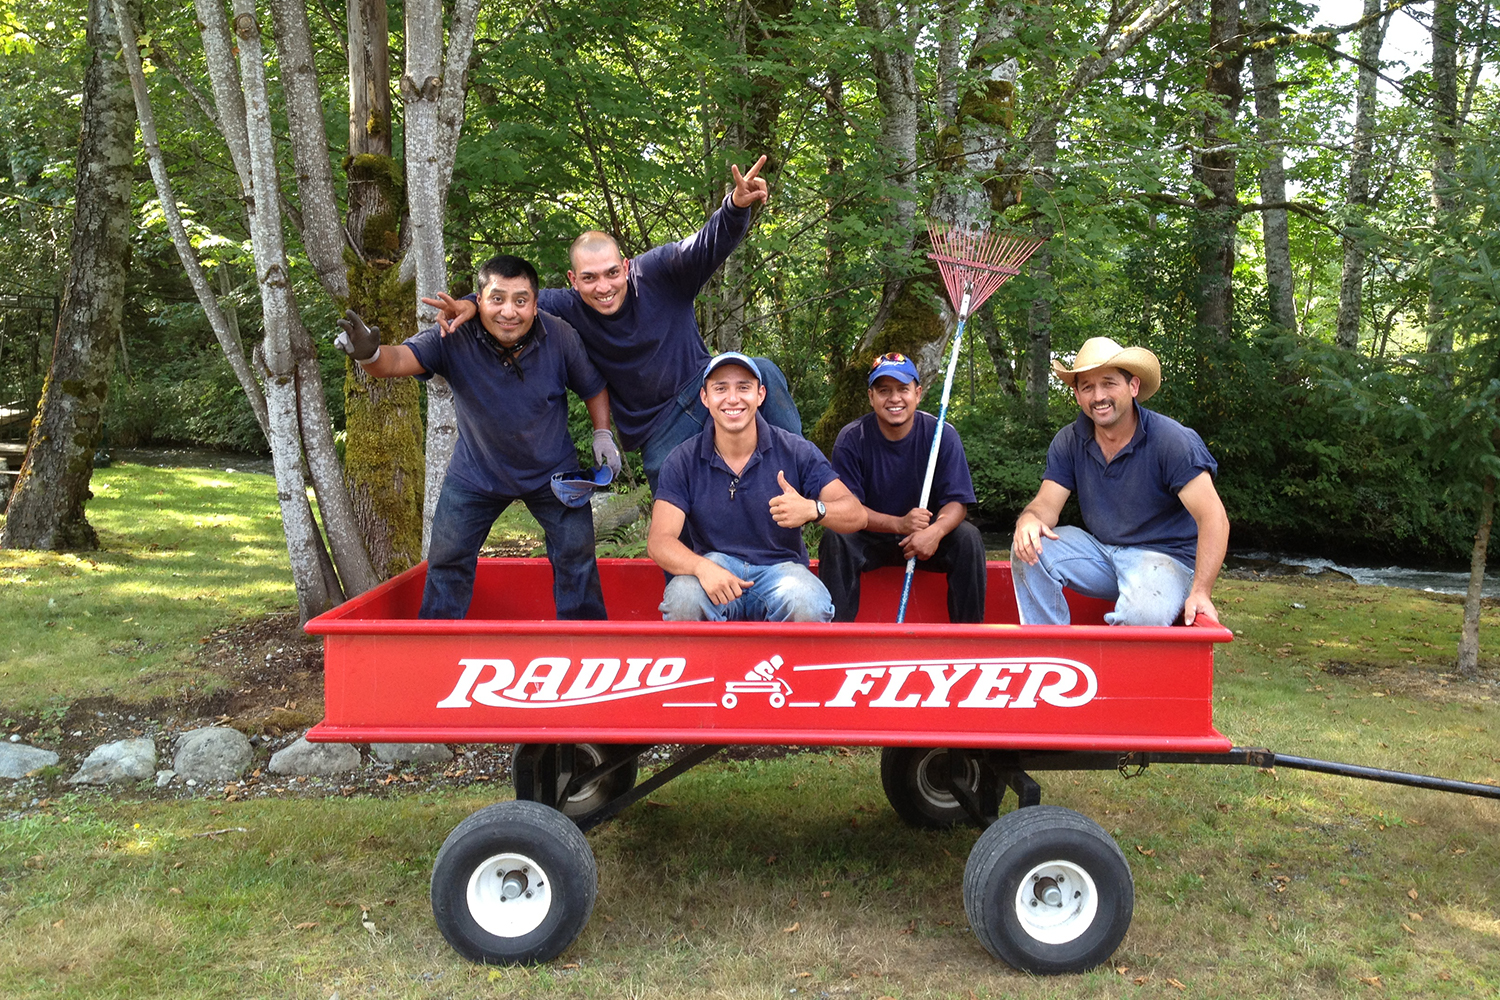 Persnickety in radio flyer